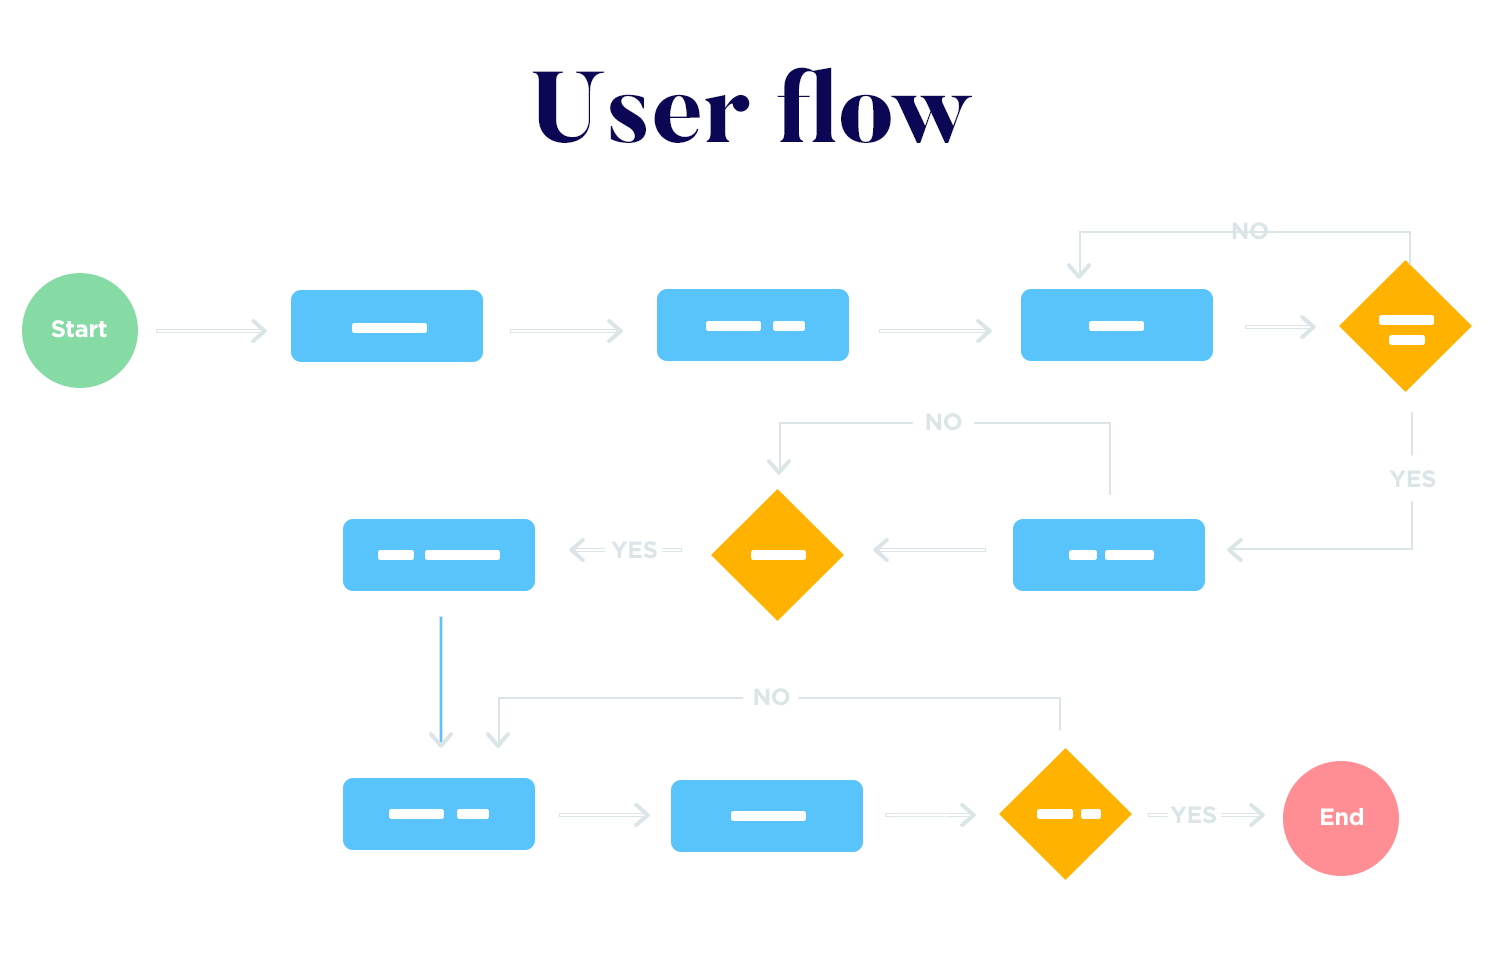 Functional specification documents - user flow of an ecommerce